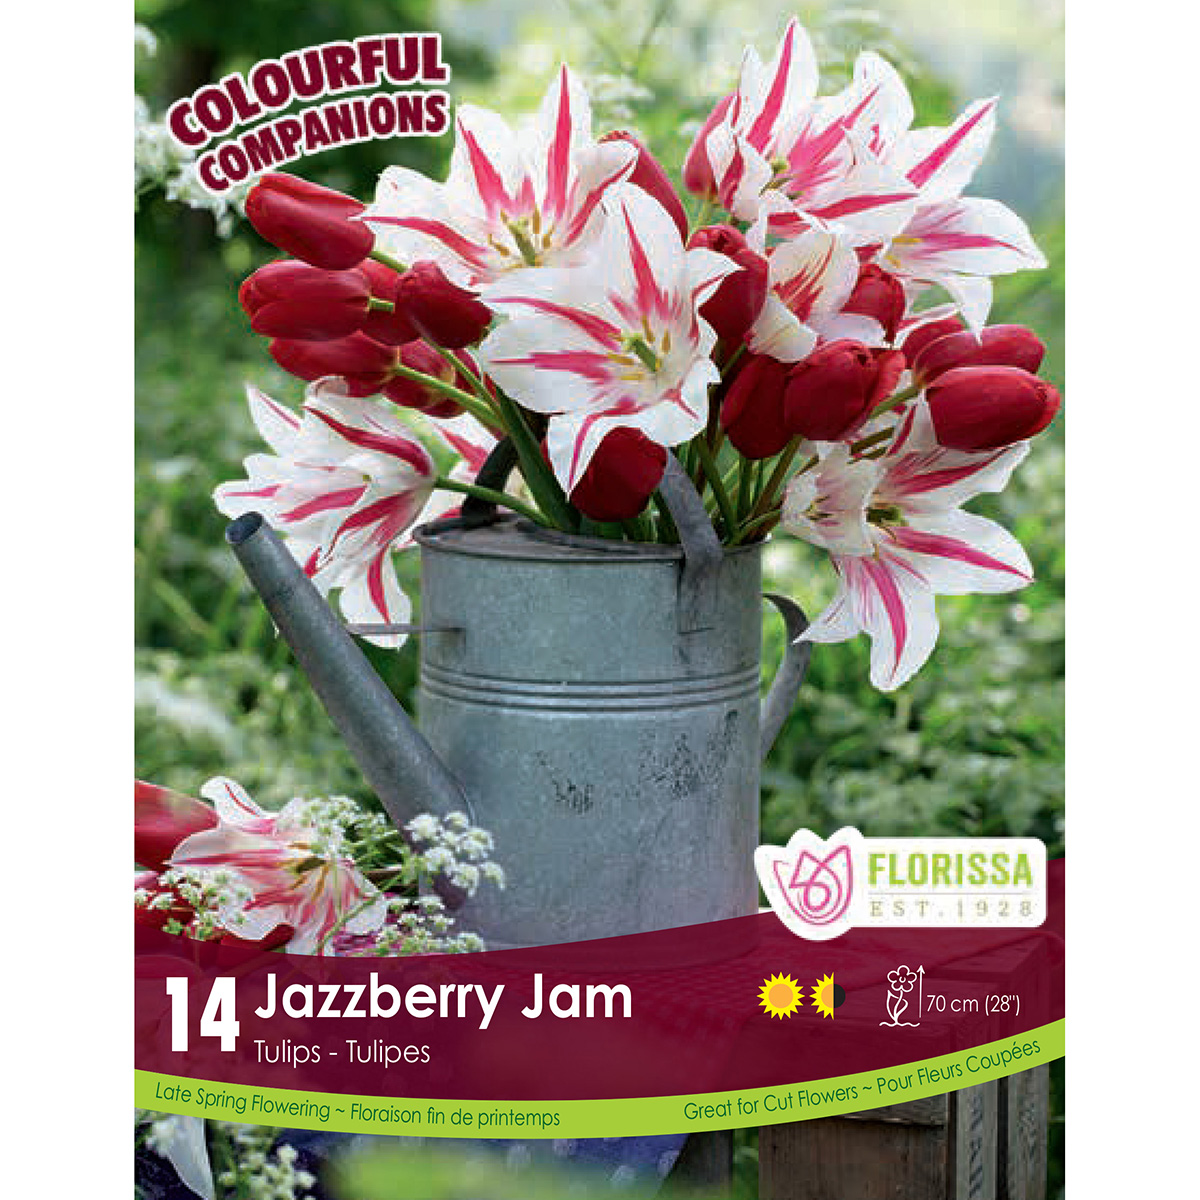 Colourful Companions Tulipa 'Jazzberry Jam' Bulbs